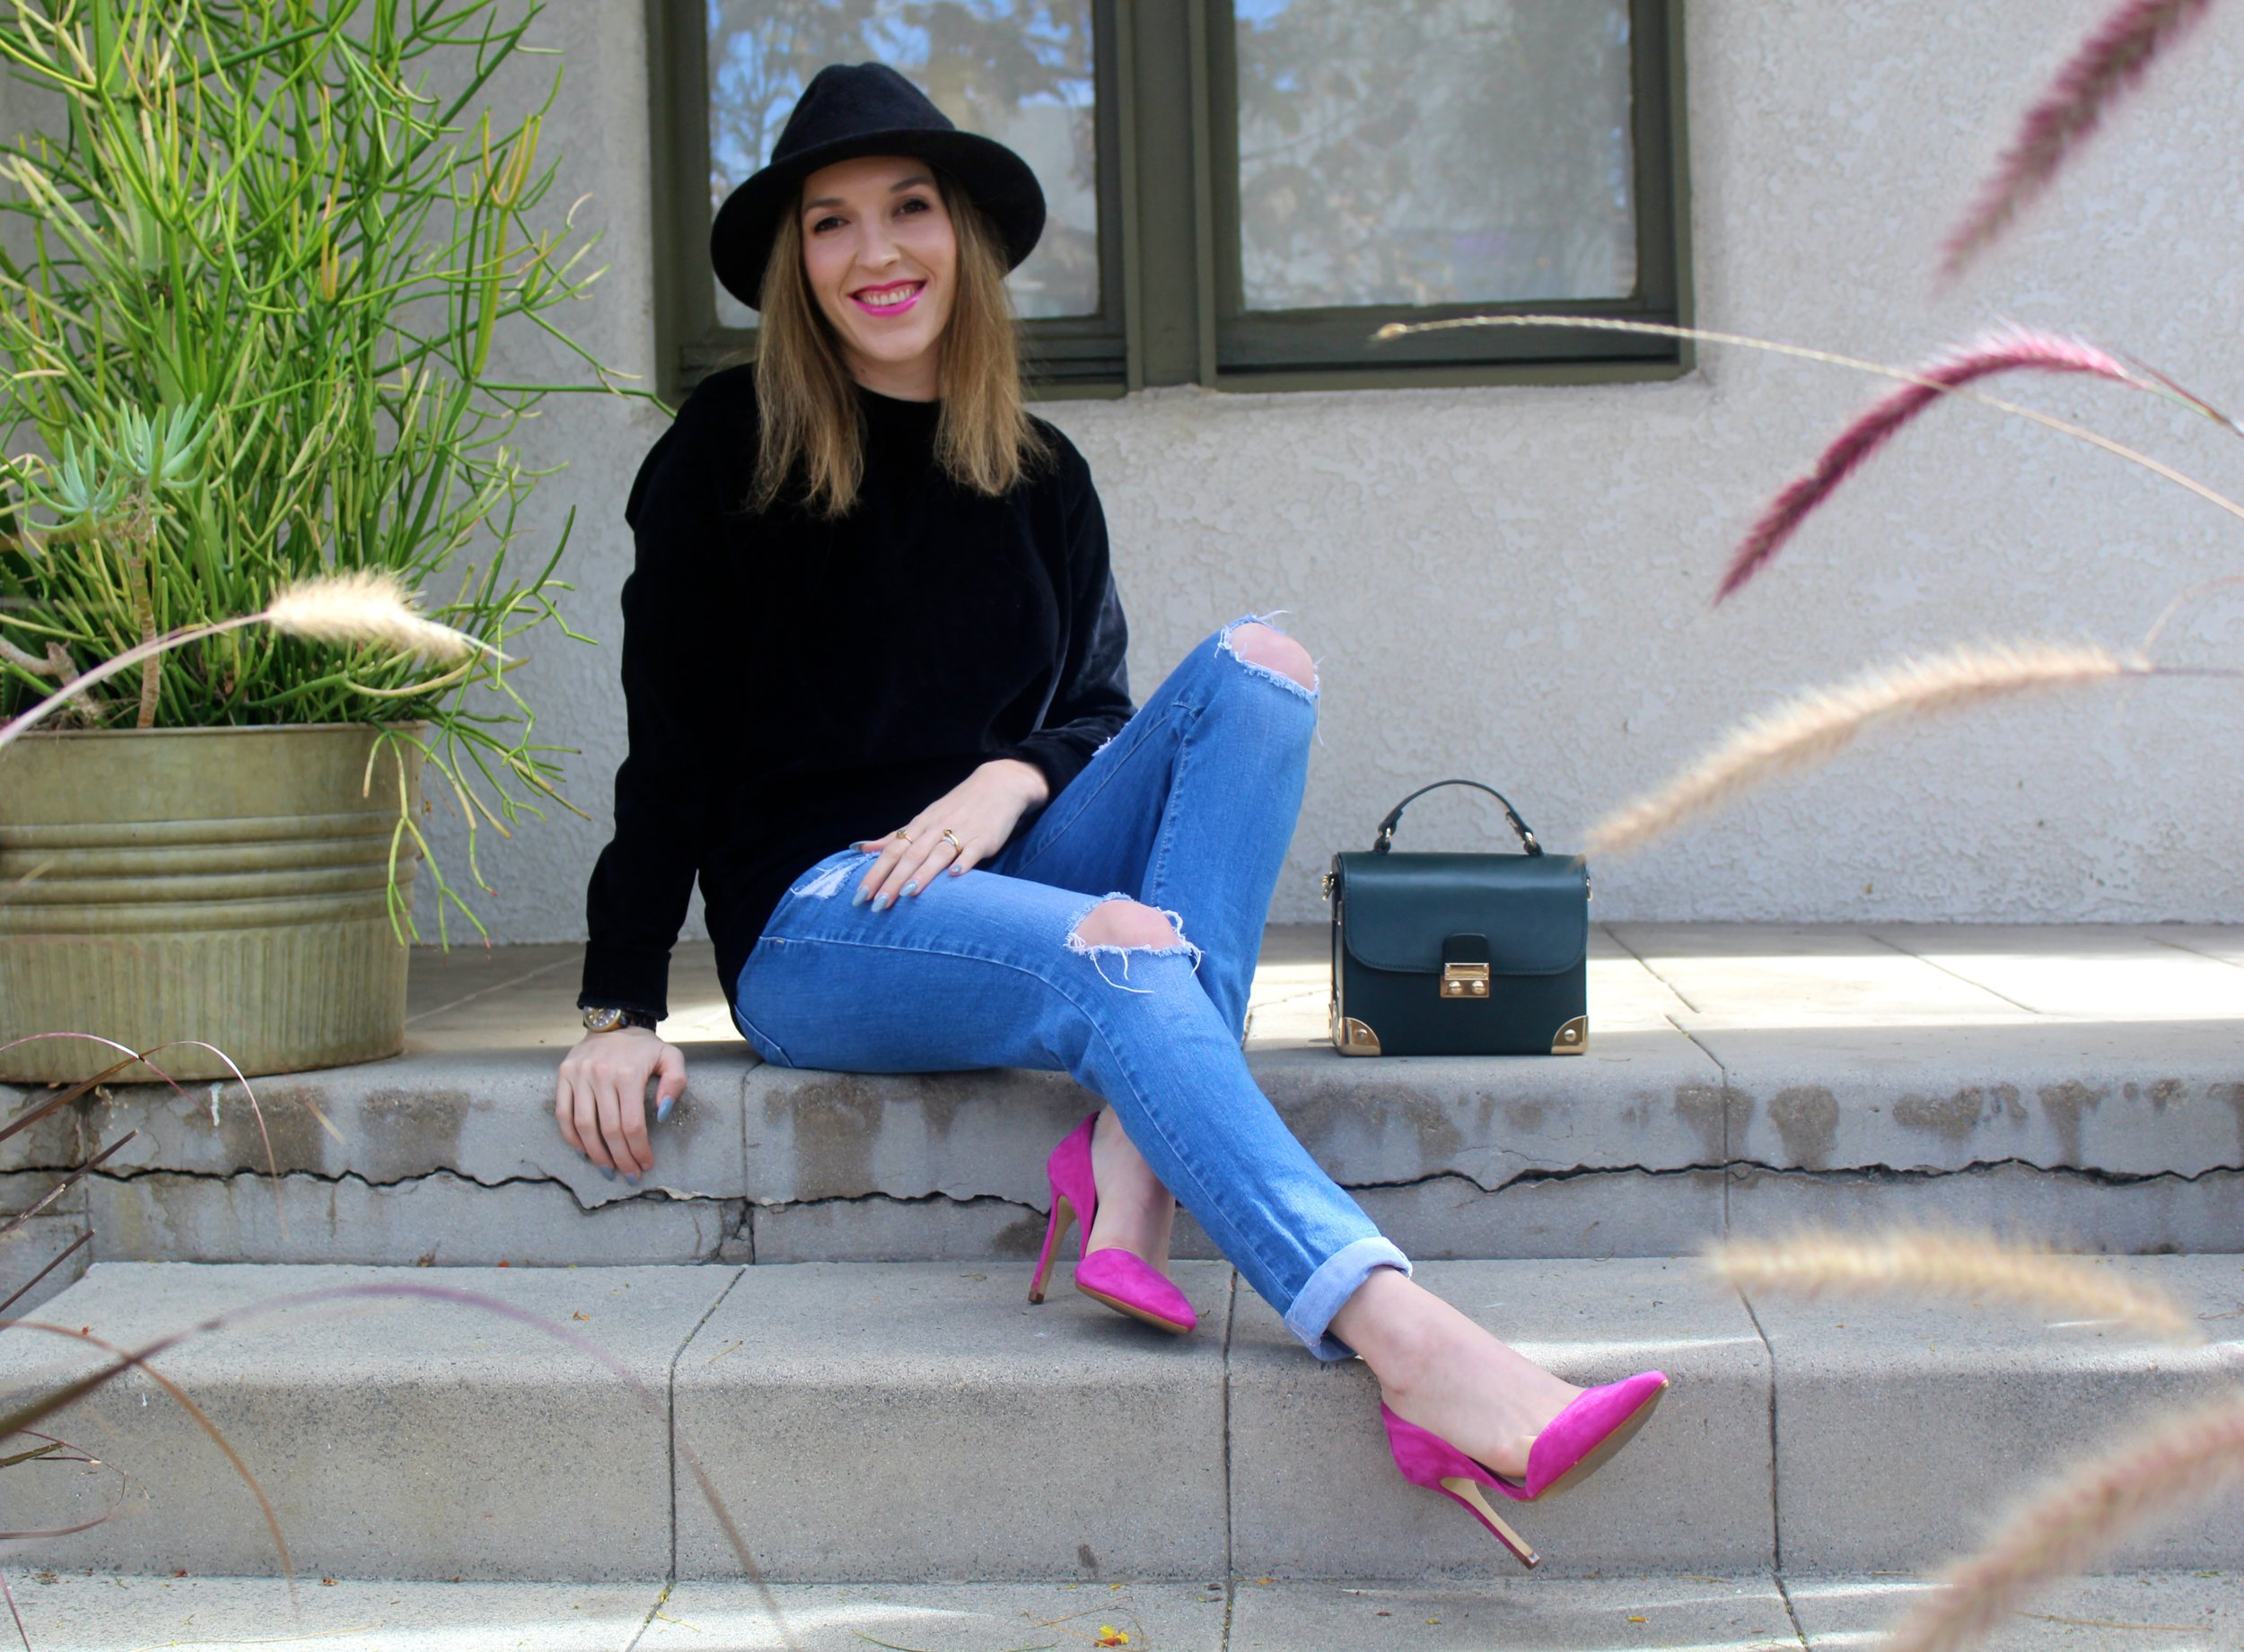 Top:  Boohoo  // Jeans: Flying Monkey,  similar here  // Heels: Banana Republic, simila r here  and  here  // Bag: Forever21, similar  here  // Hat: Goorin Brothers,  similar here    Happy Monday from me! This is a simple look to be put together, with a mix of easy casualness and bright pops of color! I am all about a certain level of comfort when I dress, so a few wardrobe staples like a pair of boyfriend jeans and a nice soft pullover are always welcome! This black velour pullover that I am sporting, is super soft to the touch and right on trend with falls velour and velvet craze! I added a nice and bright pair of hot pink heels to keep my look elevated without trying TOO hard! I love pink so of course I had to match my lip to the shoe! Duh! And OMGeeeee, I love this simple but elegant bag I got from Forever21! I found it on a mannequin and had to take it, I have not seen it since, online or on anyone so I feel a little special! It is also the prettiest shade of green for fall and makes me feel super important like a doctor or a kid with their lunch pale on the first day of school! And of course talking about the subject of comfort and ease, on my bad hair days, I just throw on my go-to rabbit fur fedora and my look is complete and tres chic!!!! This is the kinda outfit I like to take from Sunday to Monday. Hope you all have a great Monday!  xx Nicole